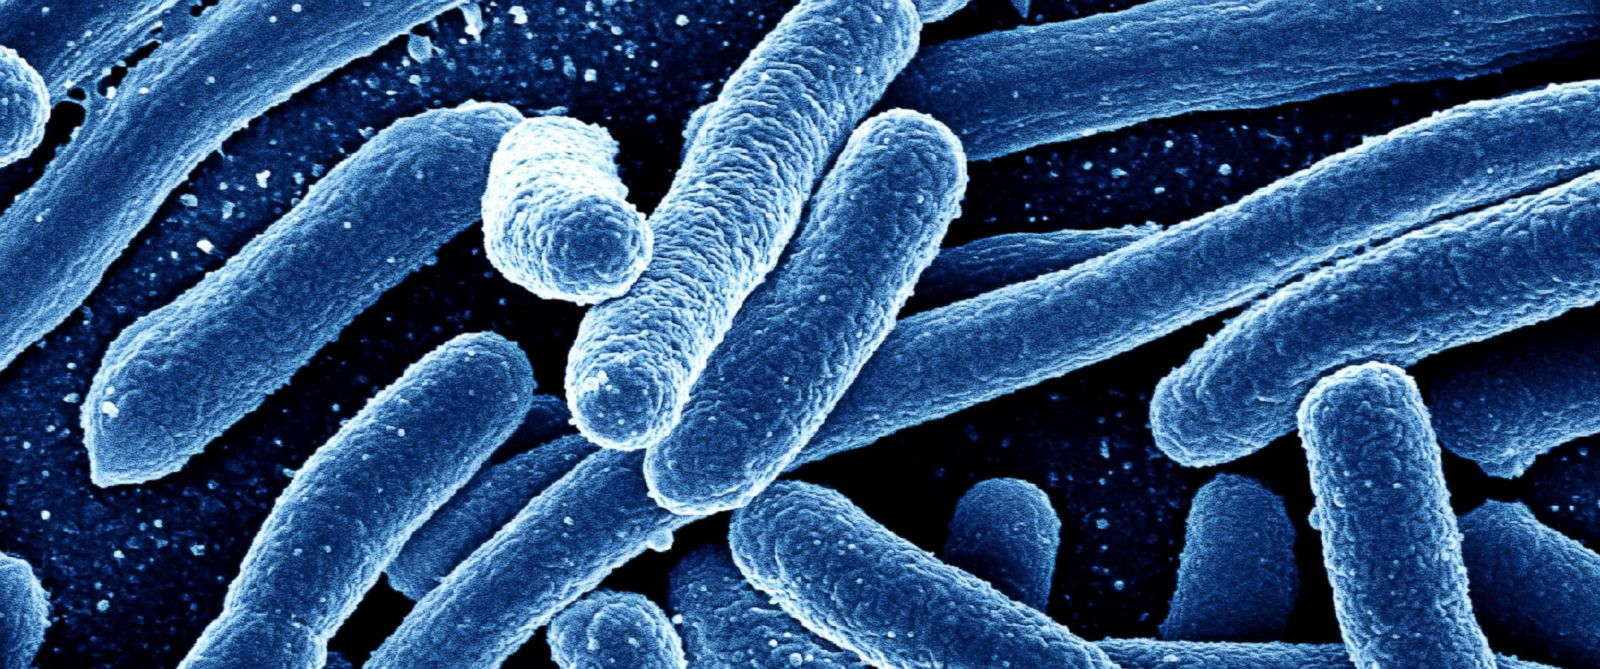 PHOTO: Bacteria is seen here in a colored scanning electron micrograph.